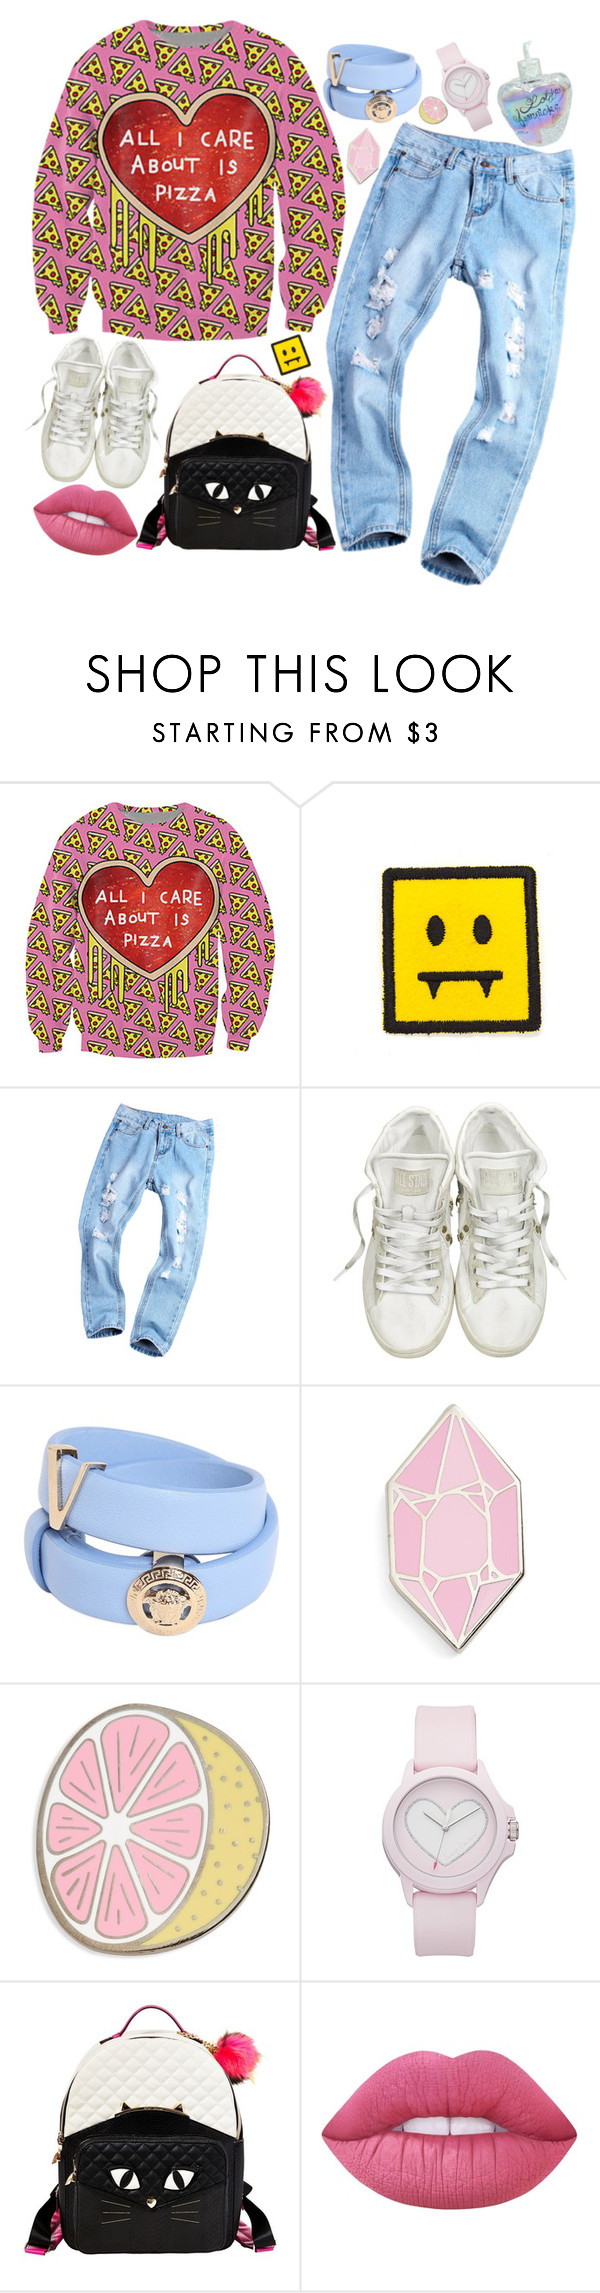 """All I care about is pizza"" by kat-von-g on Polyvore featuring Converse, Versace, Big Bud Press, Juicy Couture, Betsey Johnson, Lime Crime and Lolita Lempicka"